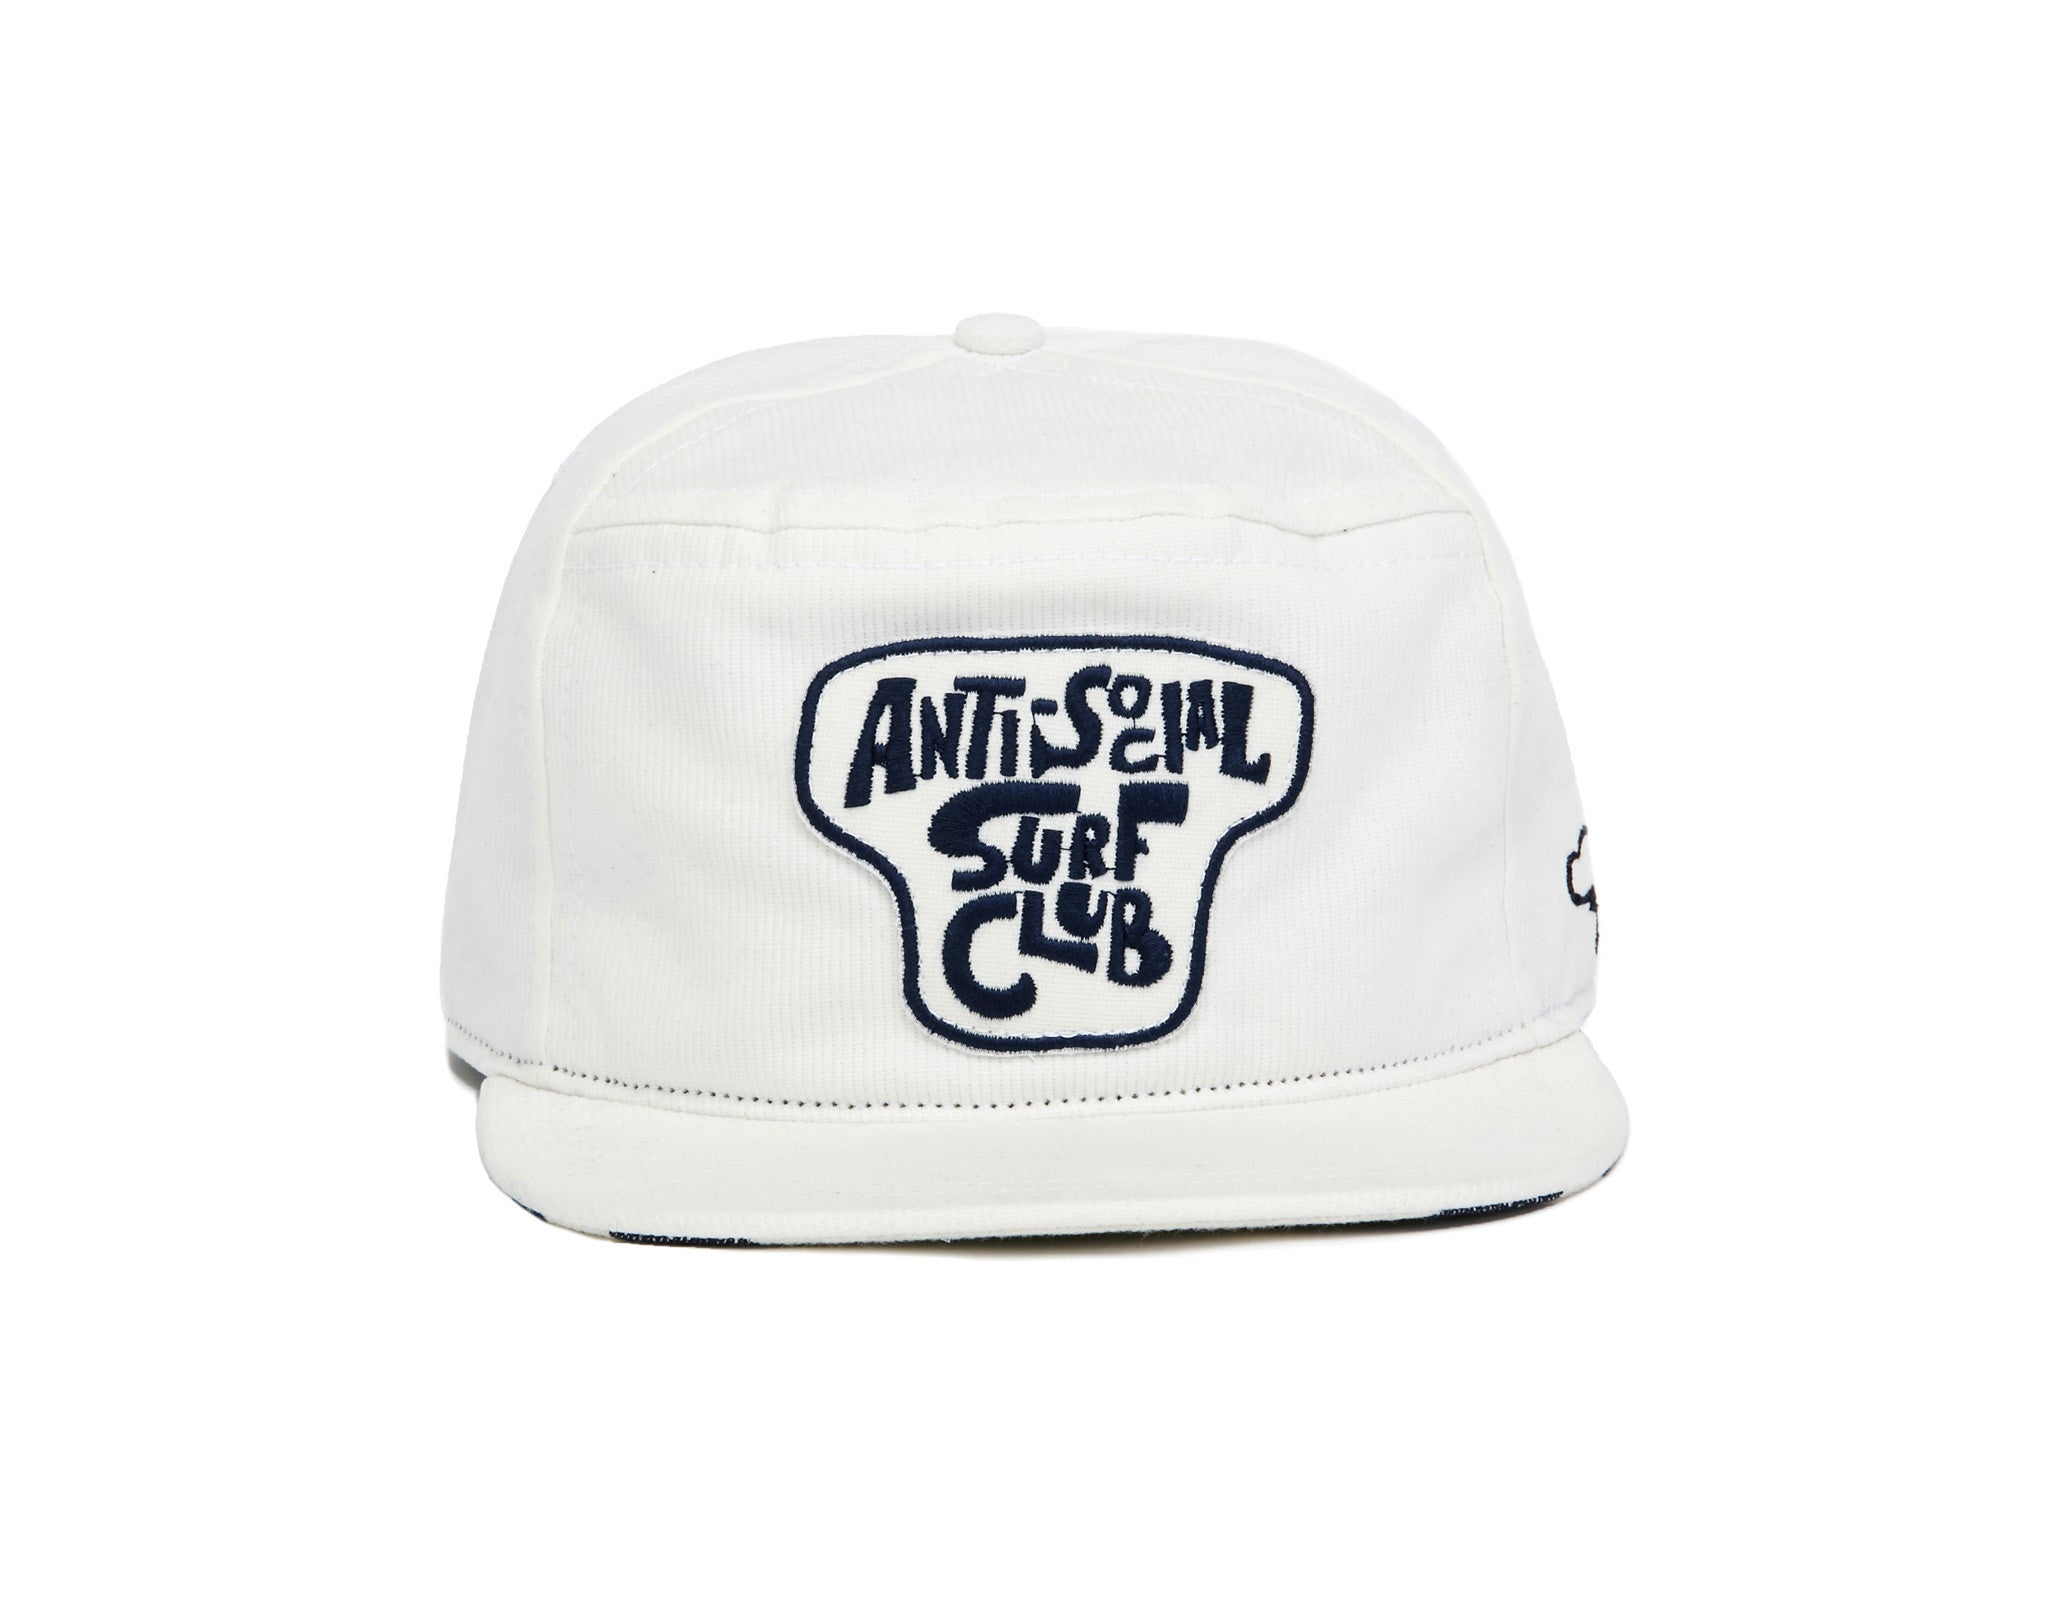 ANTI-SOCIAL SURF CLUB Snapback - White